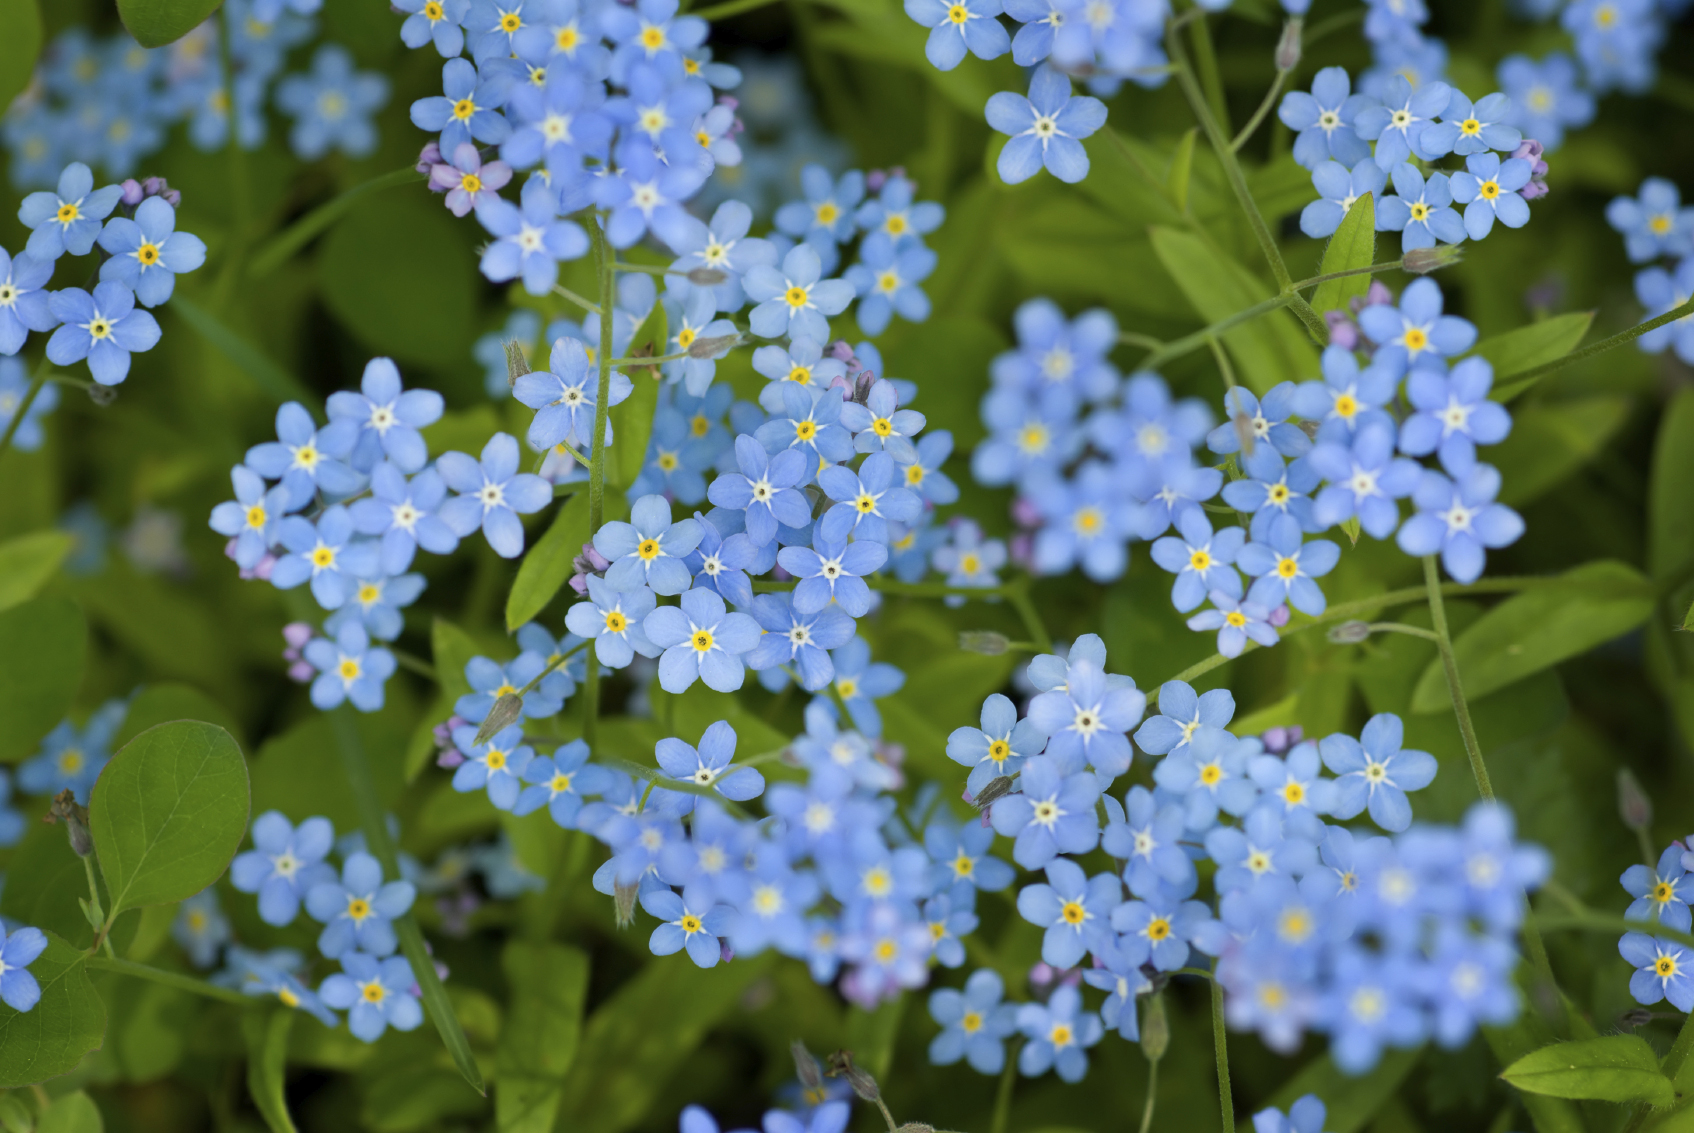 Foraging for edible flowers forget-me-nots